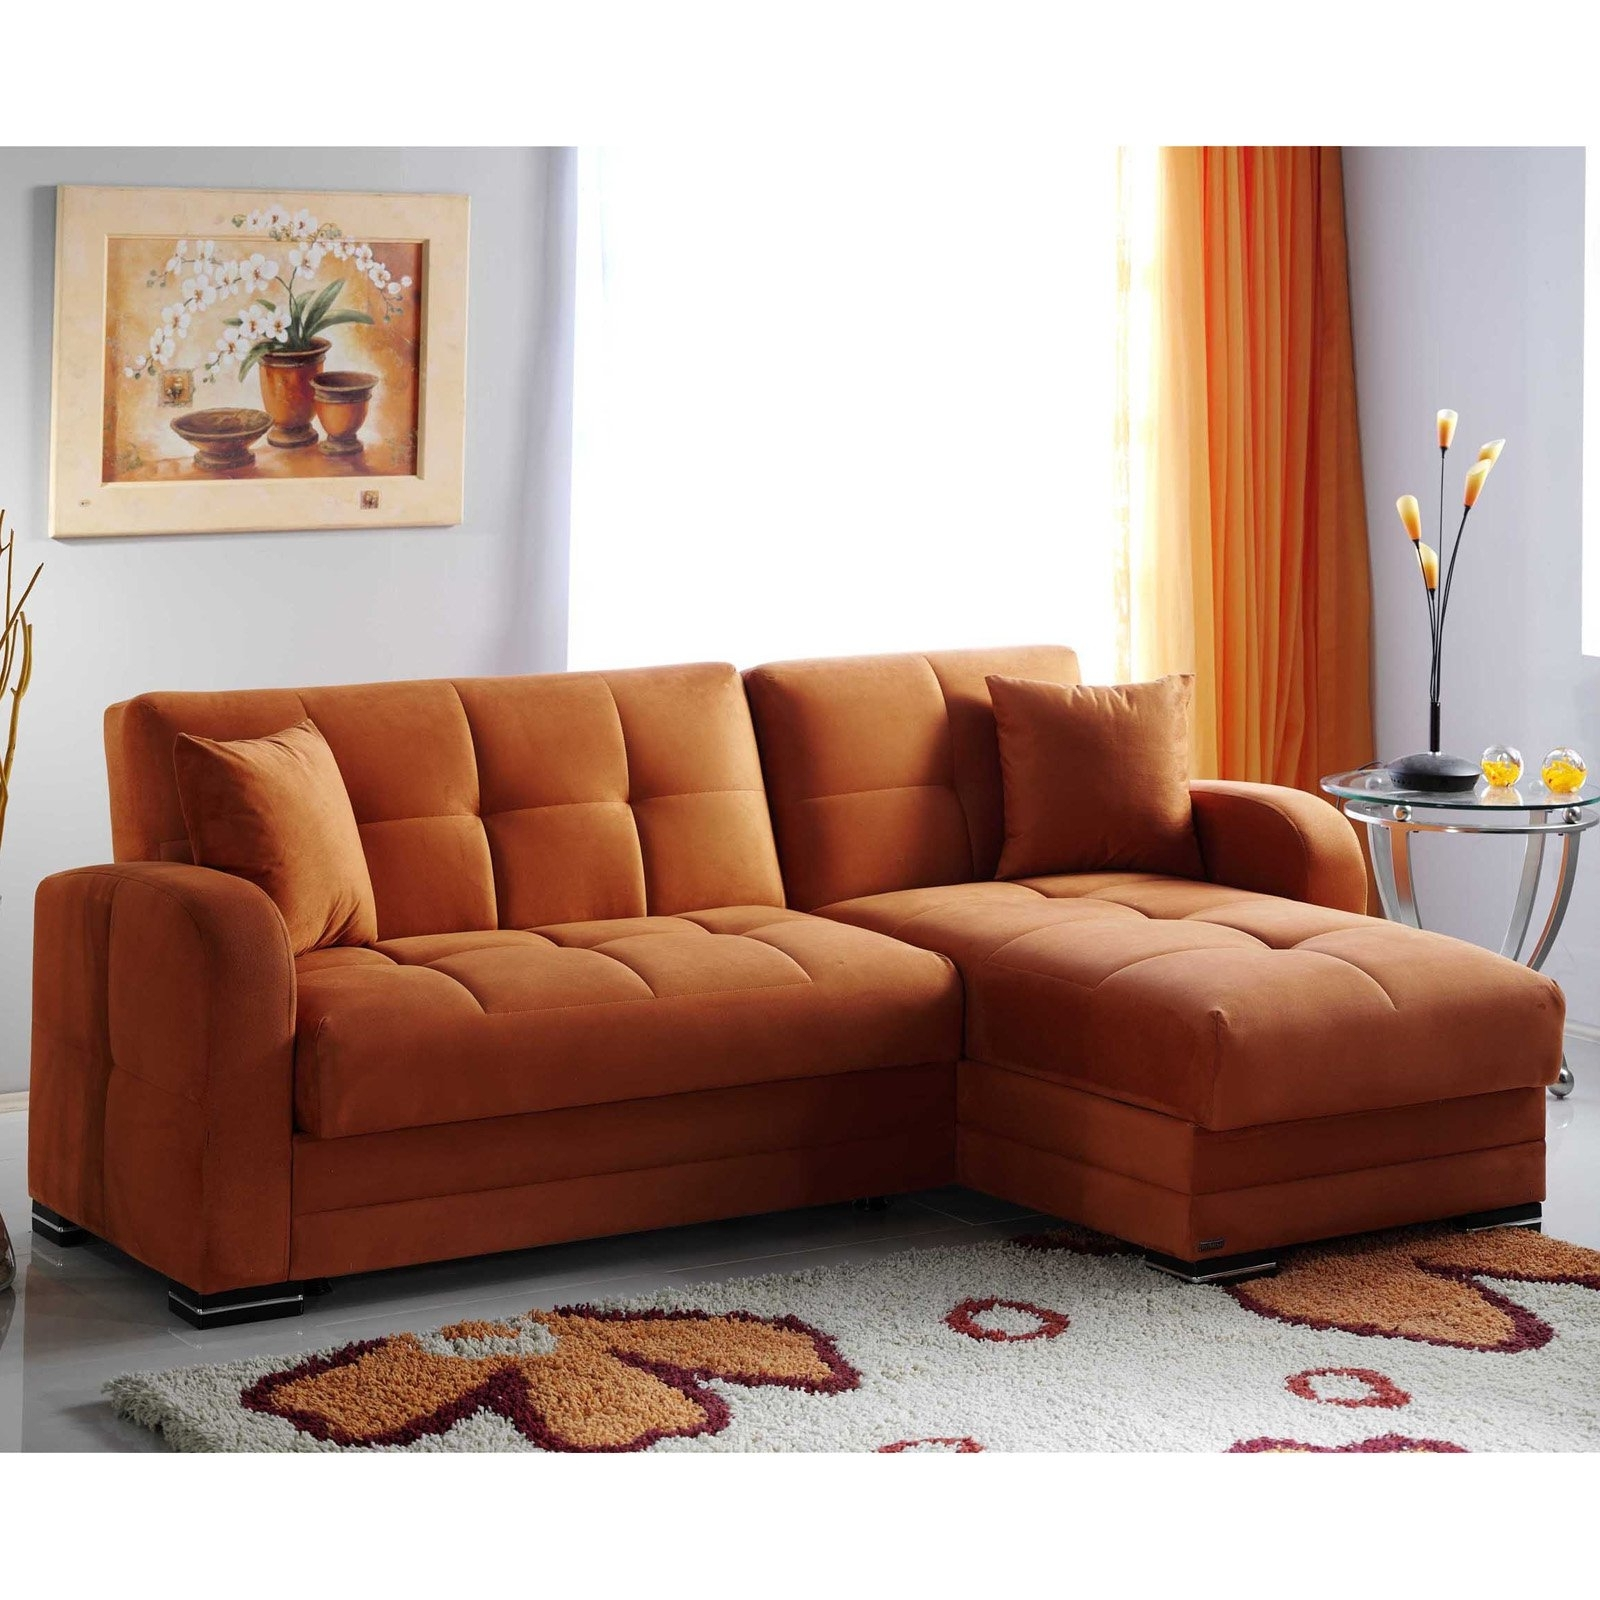 Preferred Queens Ny Sectional Sofas Throughout Kubo Sectional Sofa (View 9 of 15)